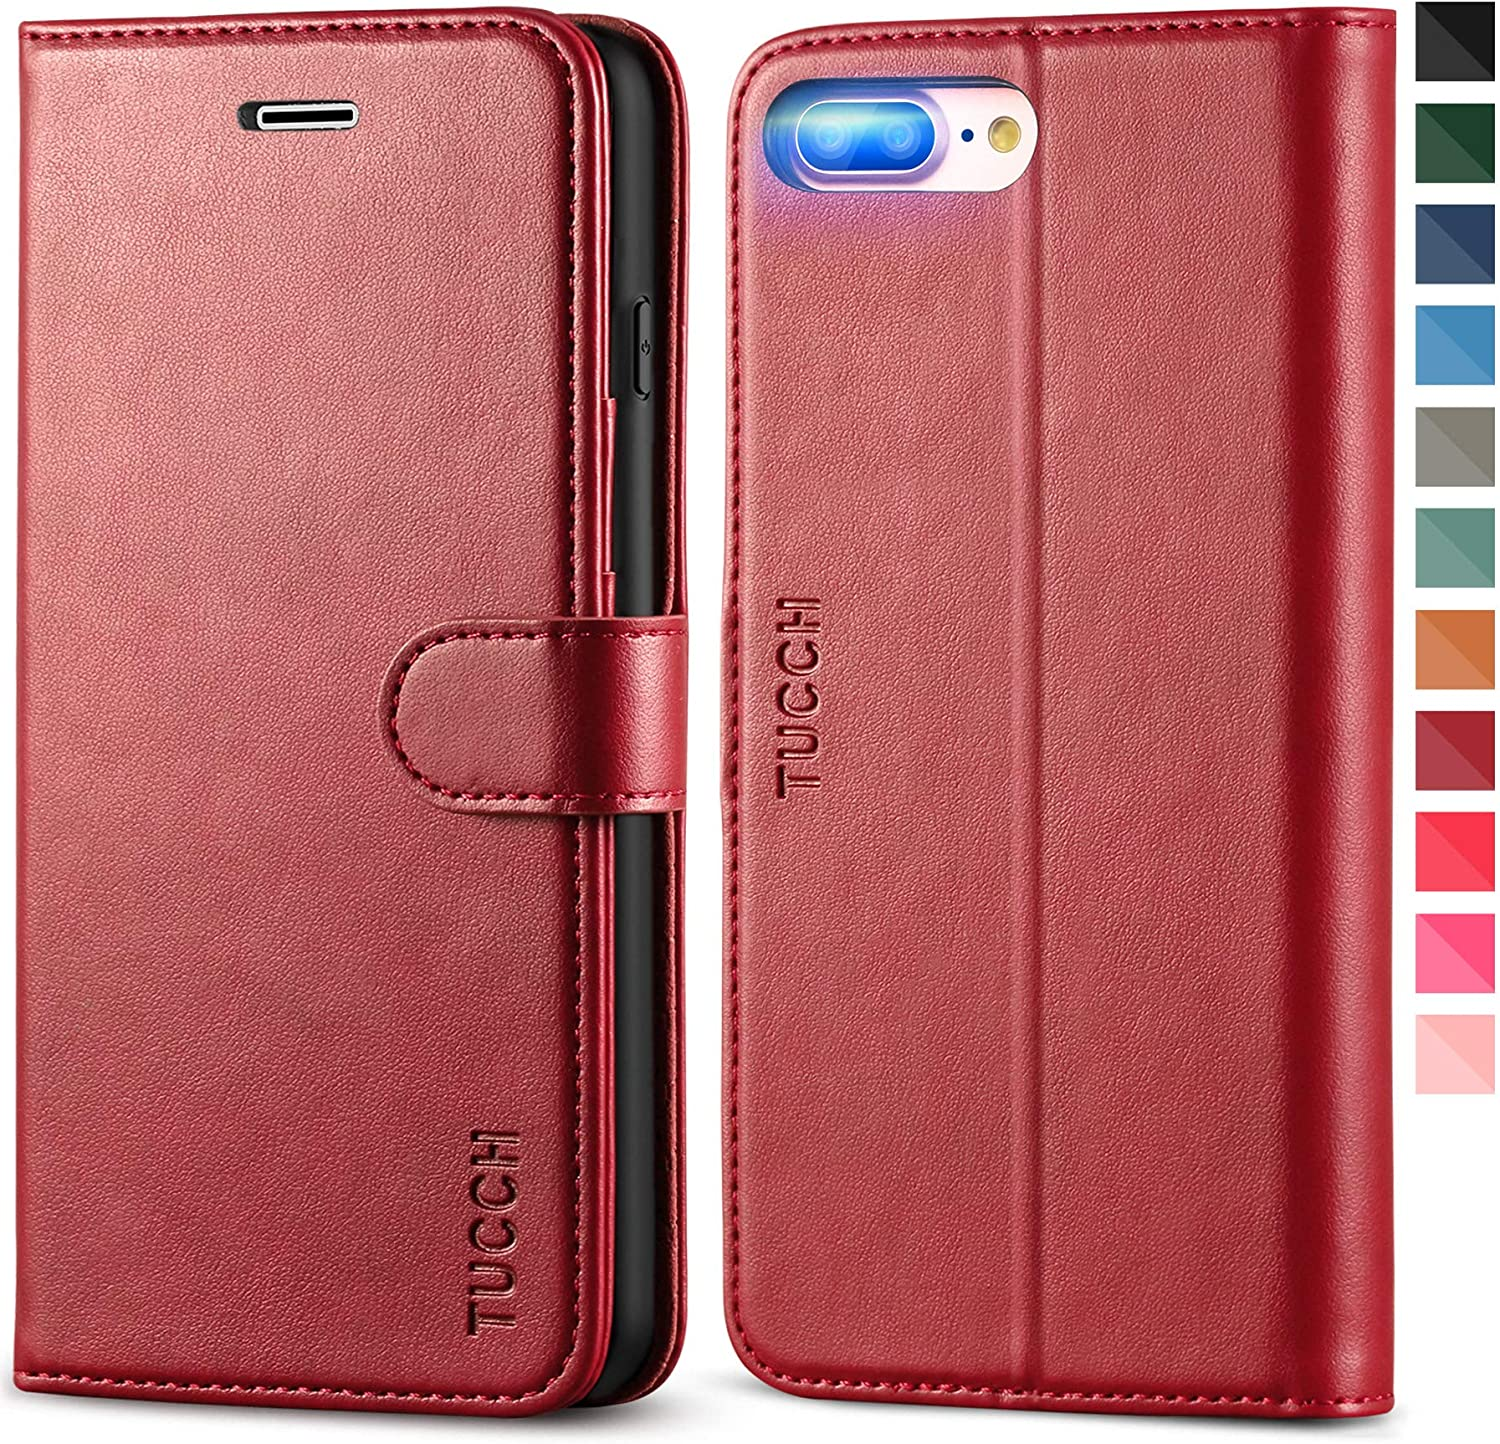 TUCCH iPhone 8 Plus Case, iPhone 7 Plus Wallet Case, Magnetic Closure Card Slots Money Pouch, Stand PU Leather Purse Cover Flip Book [TPU Interior Case] Compatible with iPhone 8 Plus/7 Plus, Dark Red